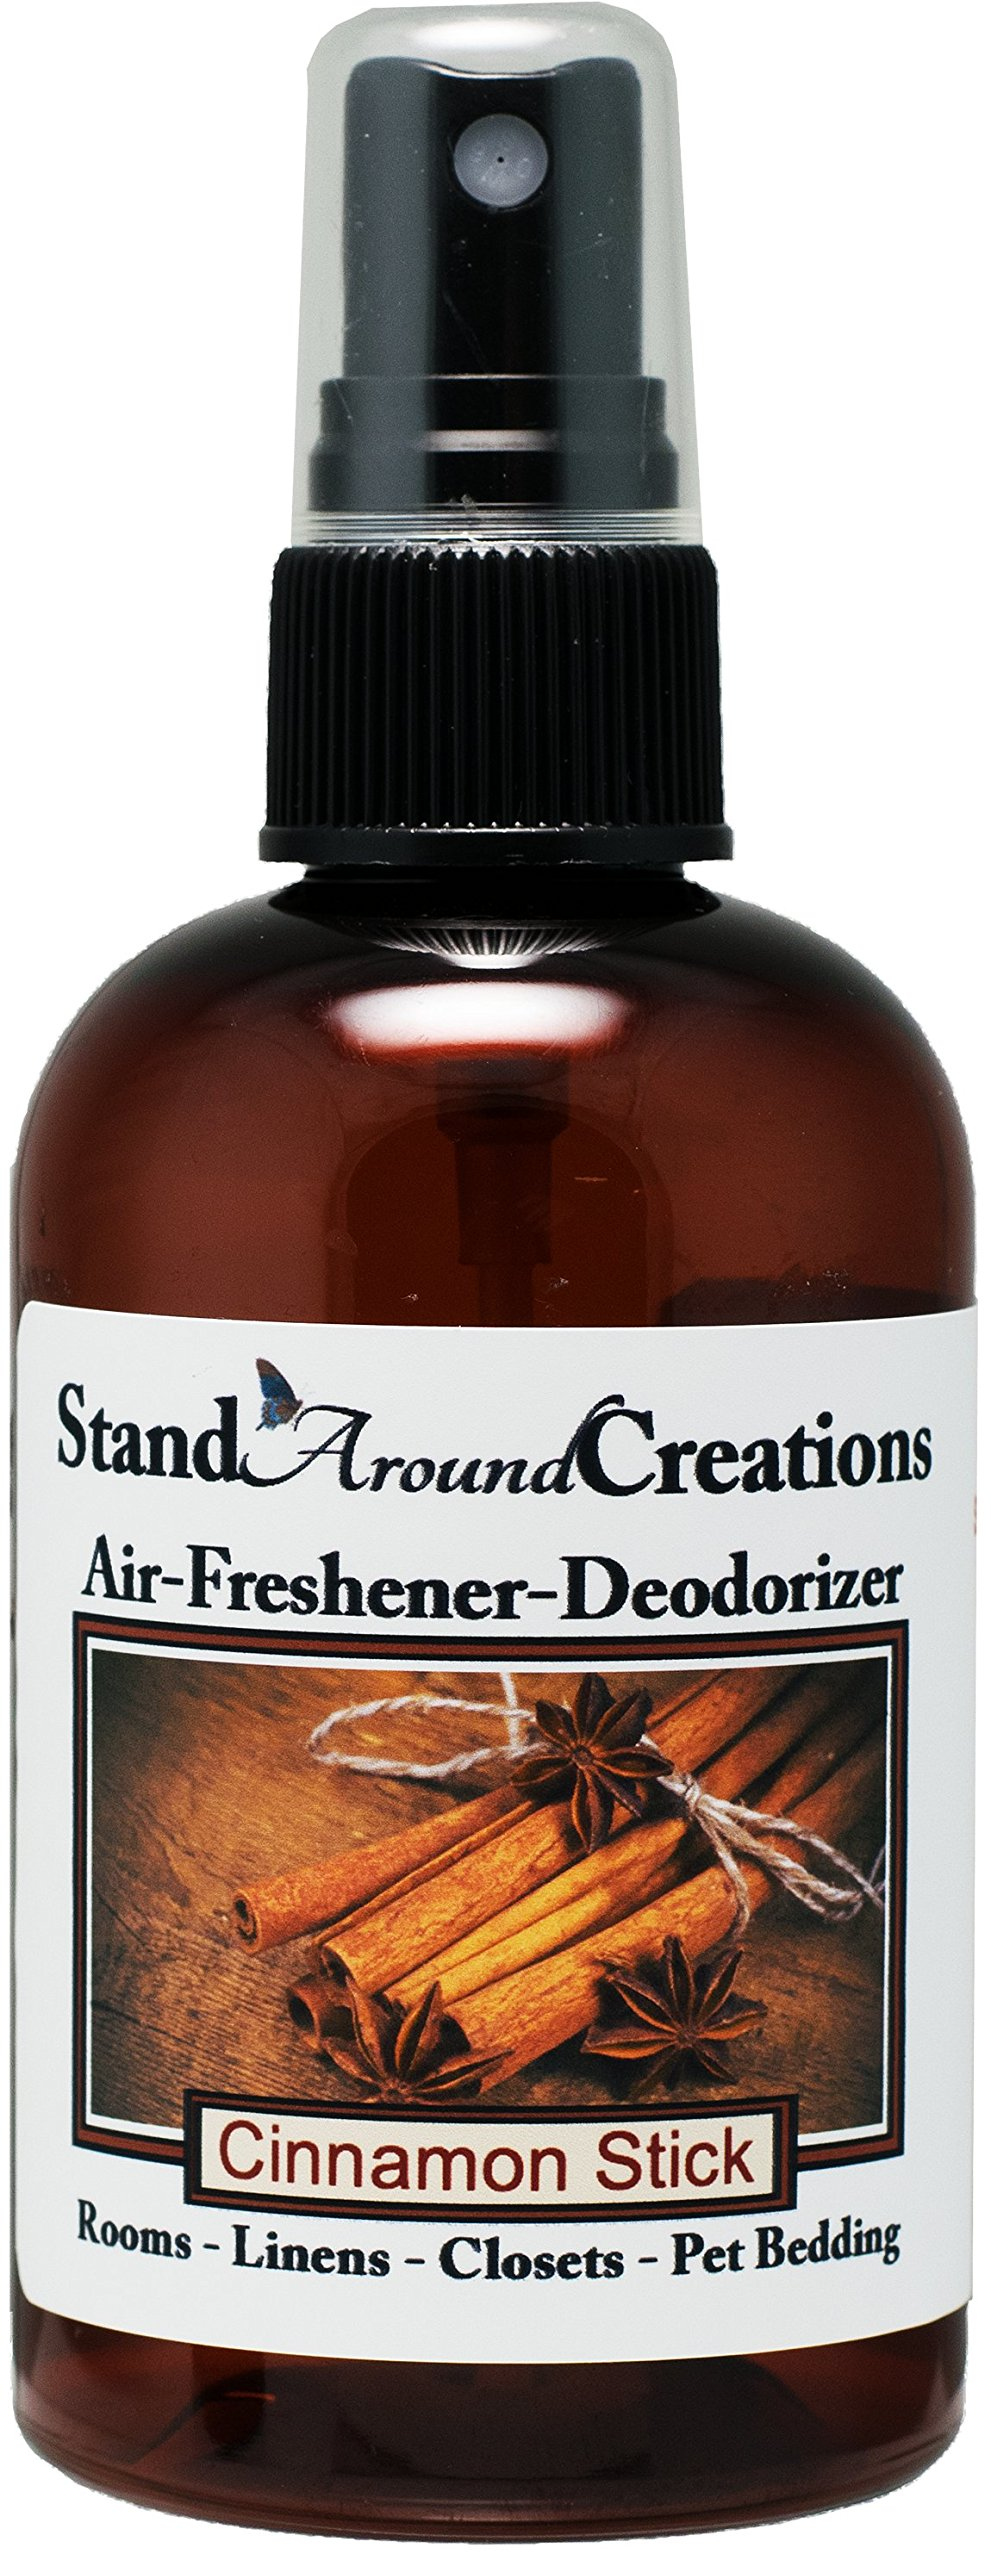 Concentrated Spray For Room / Linen / Room Deodorizer / Air Freshener - 4 fl oz - Scent - Cinnamon Stick: A full bodied scent of rich spicy cinnamon. This fragrance is infused with natural essential oils, including Cinnamon, Clove, Cinnamon Bark and Nutme